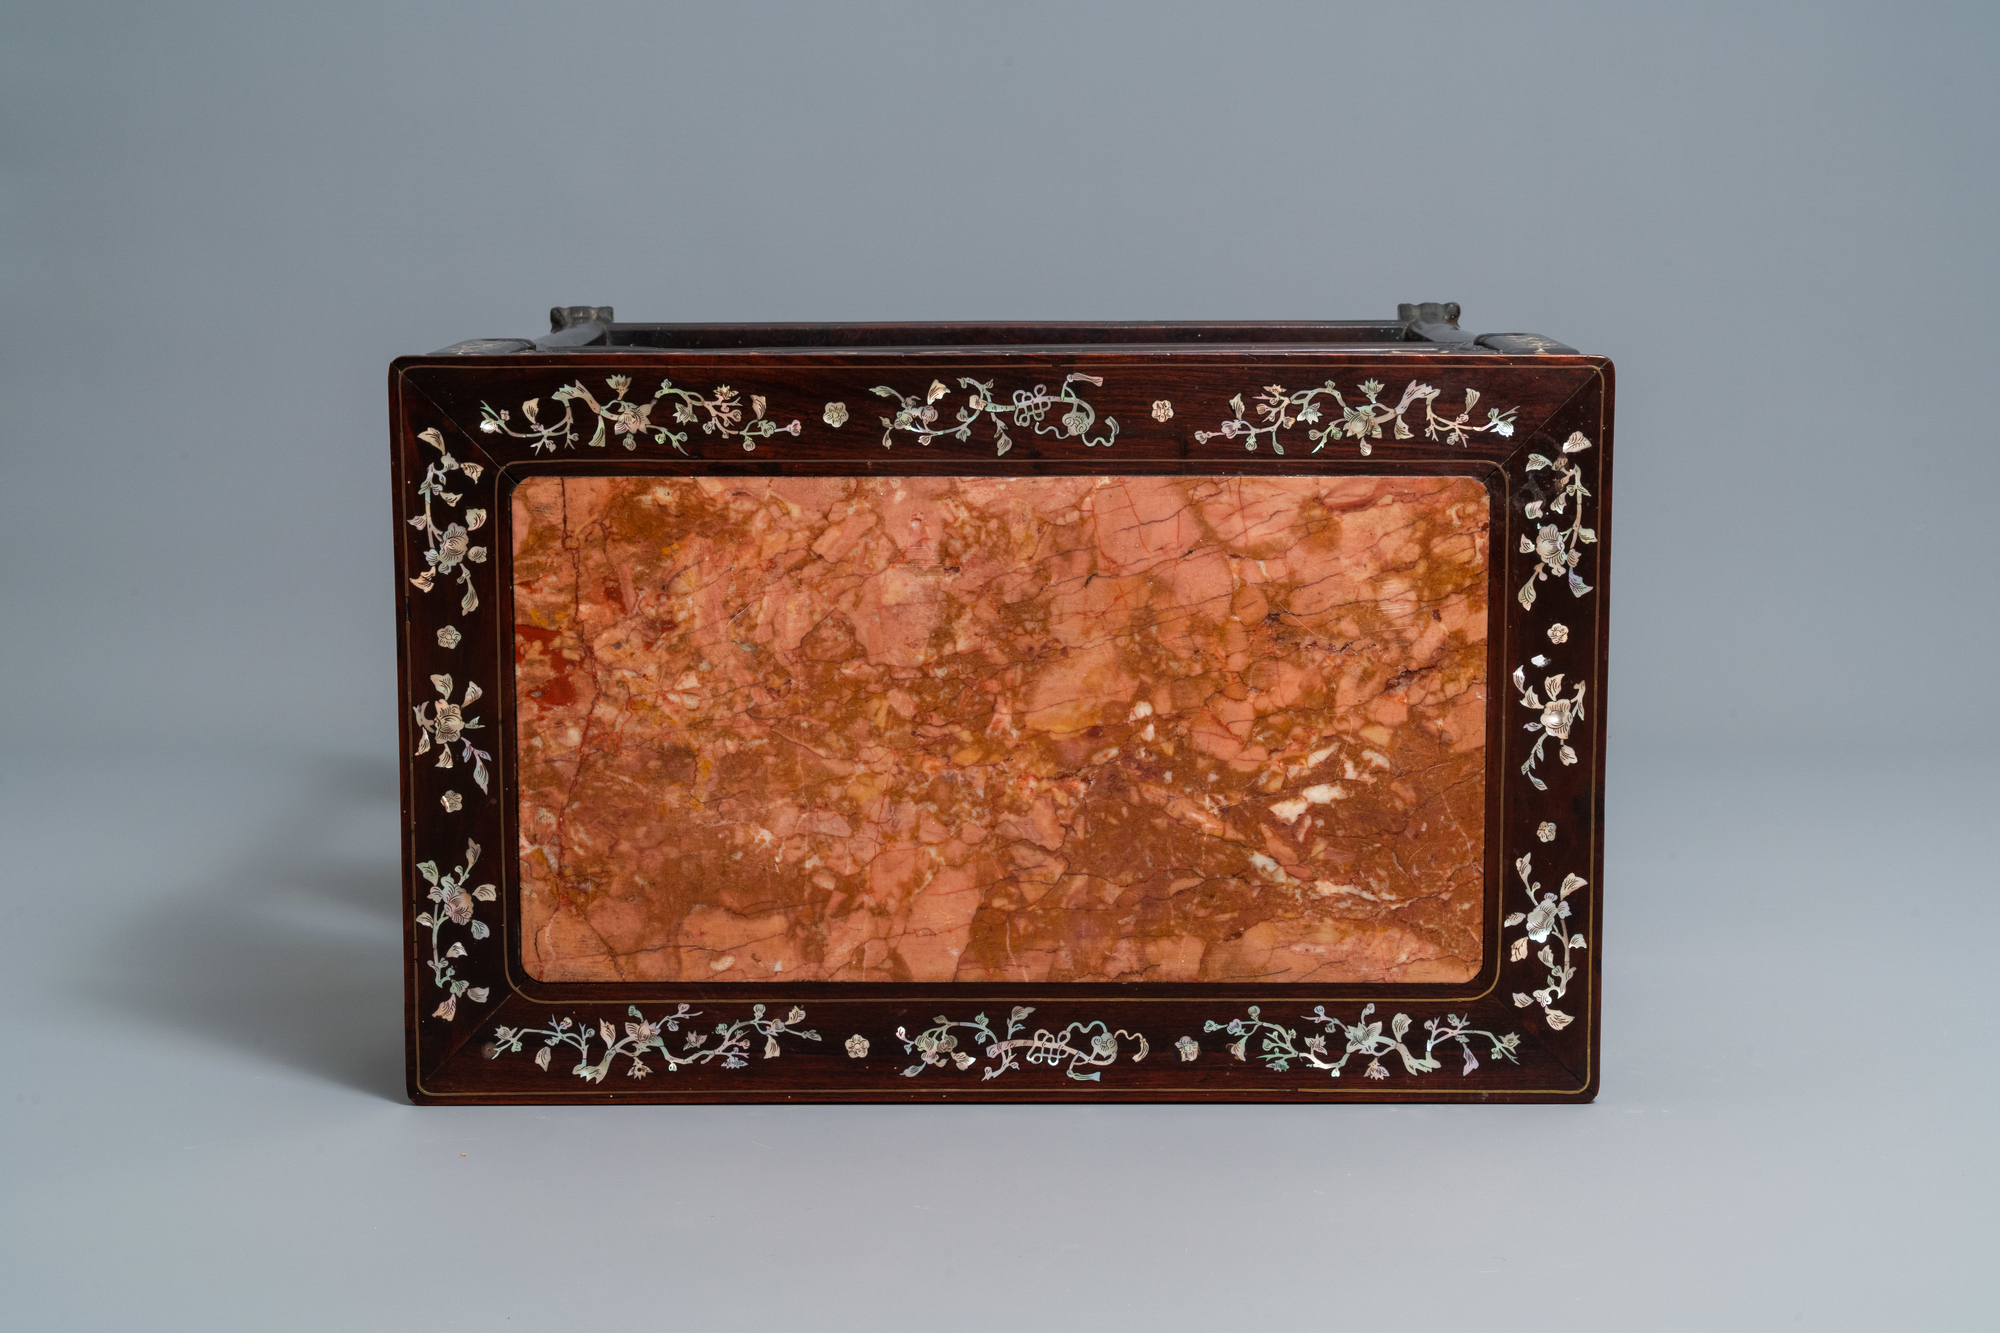 A Chinese mother-of-pearl-inlaid wooden sideboard with marble top, 19th C. - Image 6 of 10